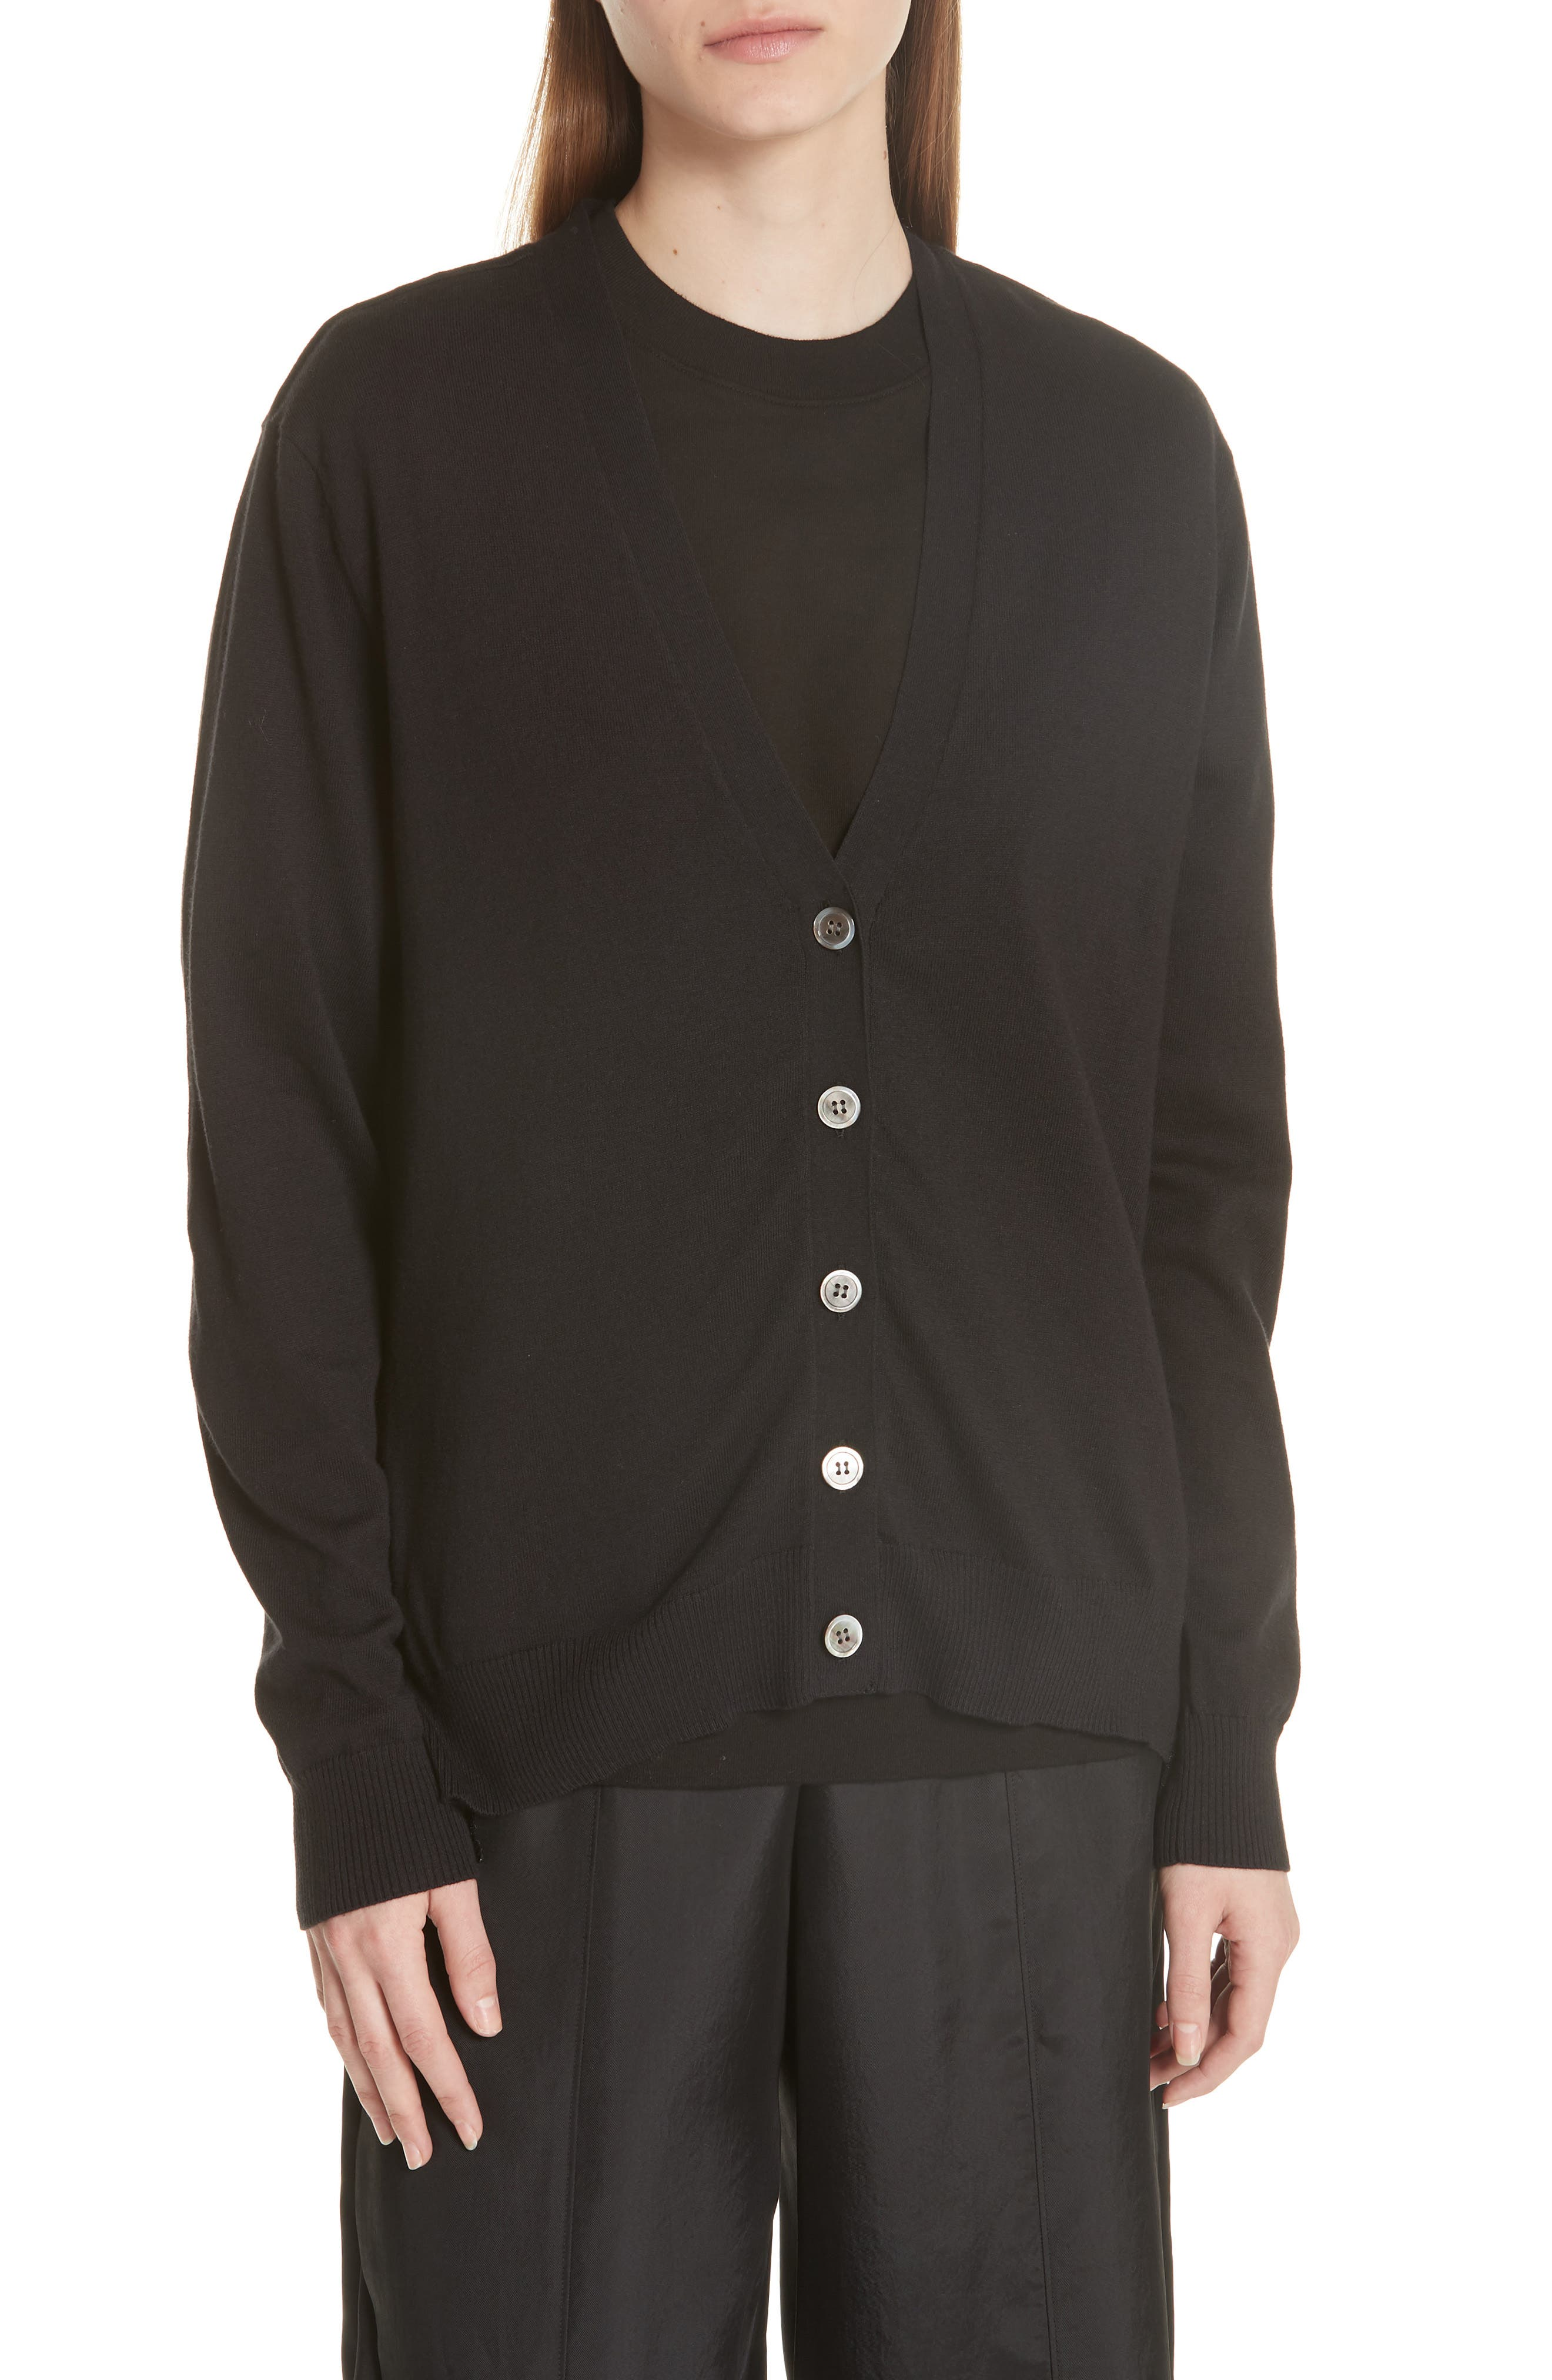 Pleat Back Cardigan,                             Main thumbnail 1, color,                             Black